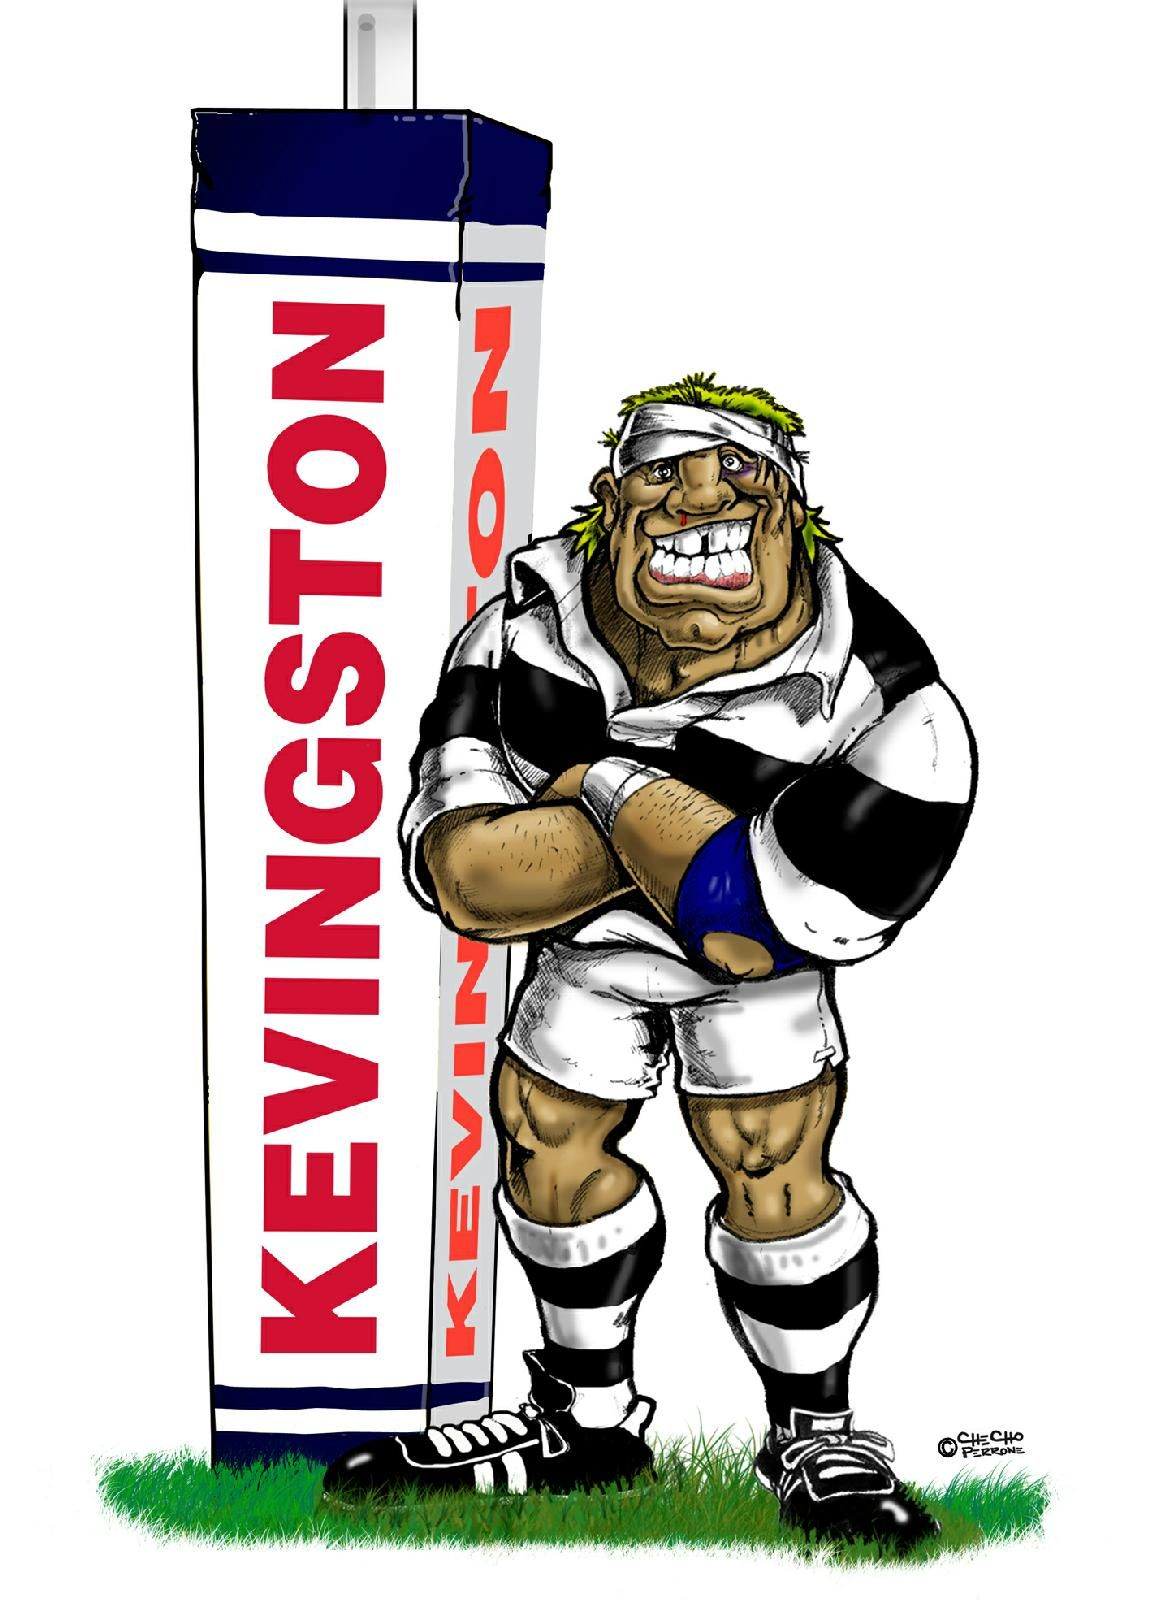 Imagenes Kevingston Rugby Imagenes Rugby Rugby Sport